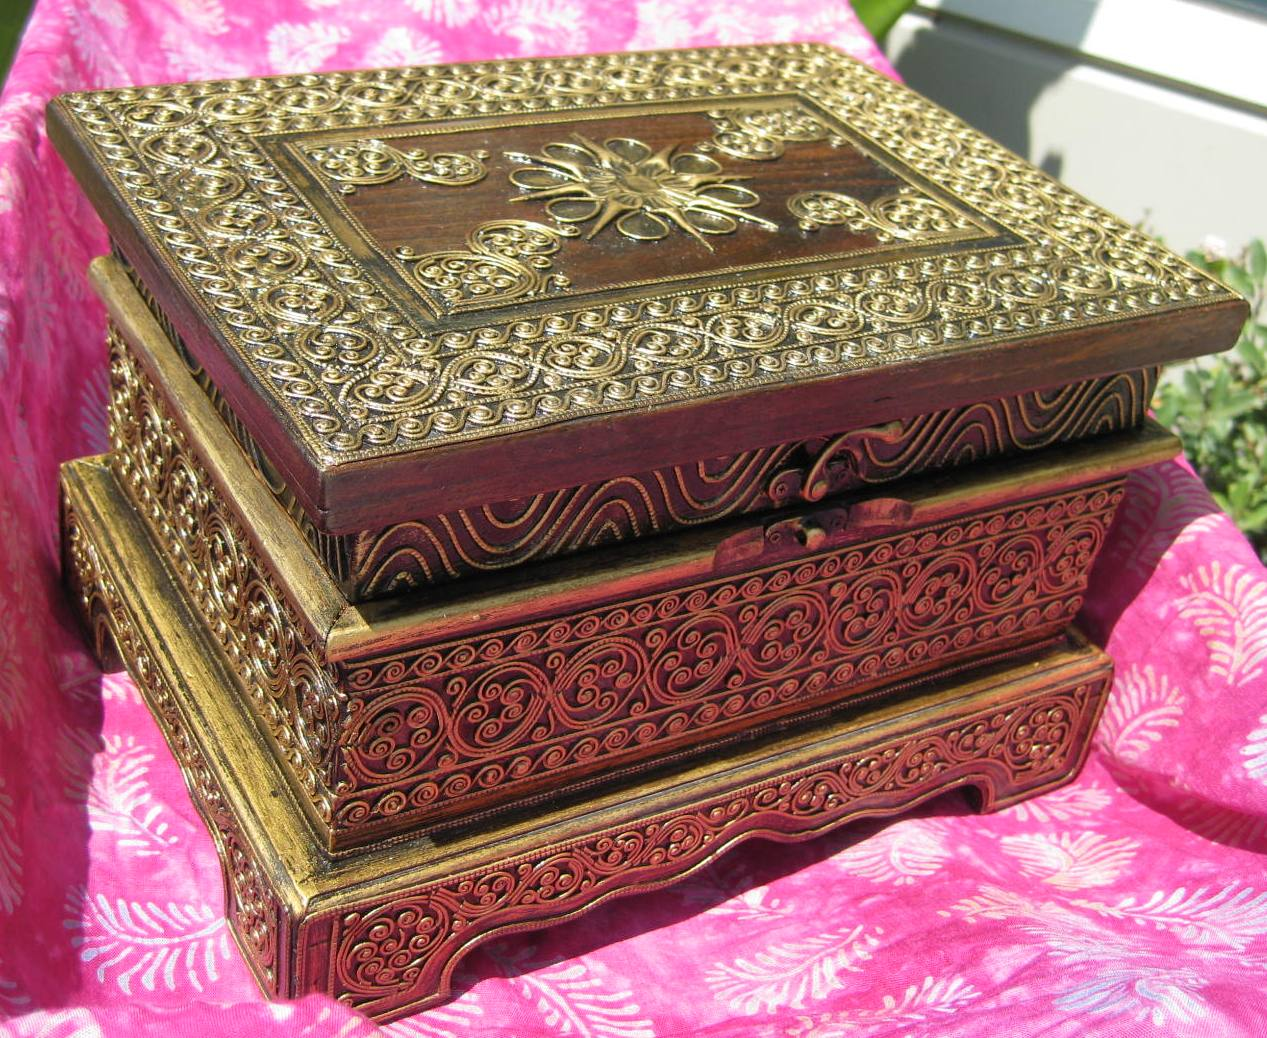 Spiritual Decorative Box